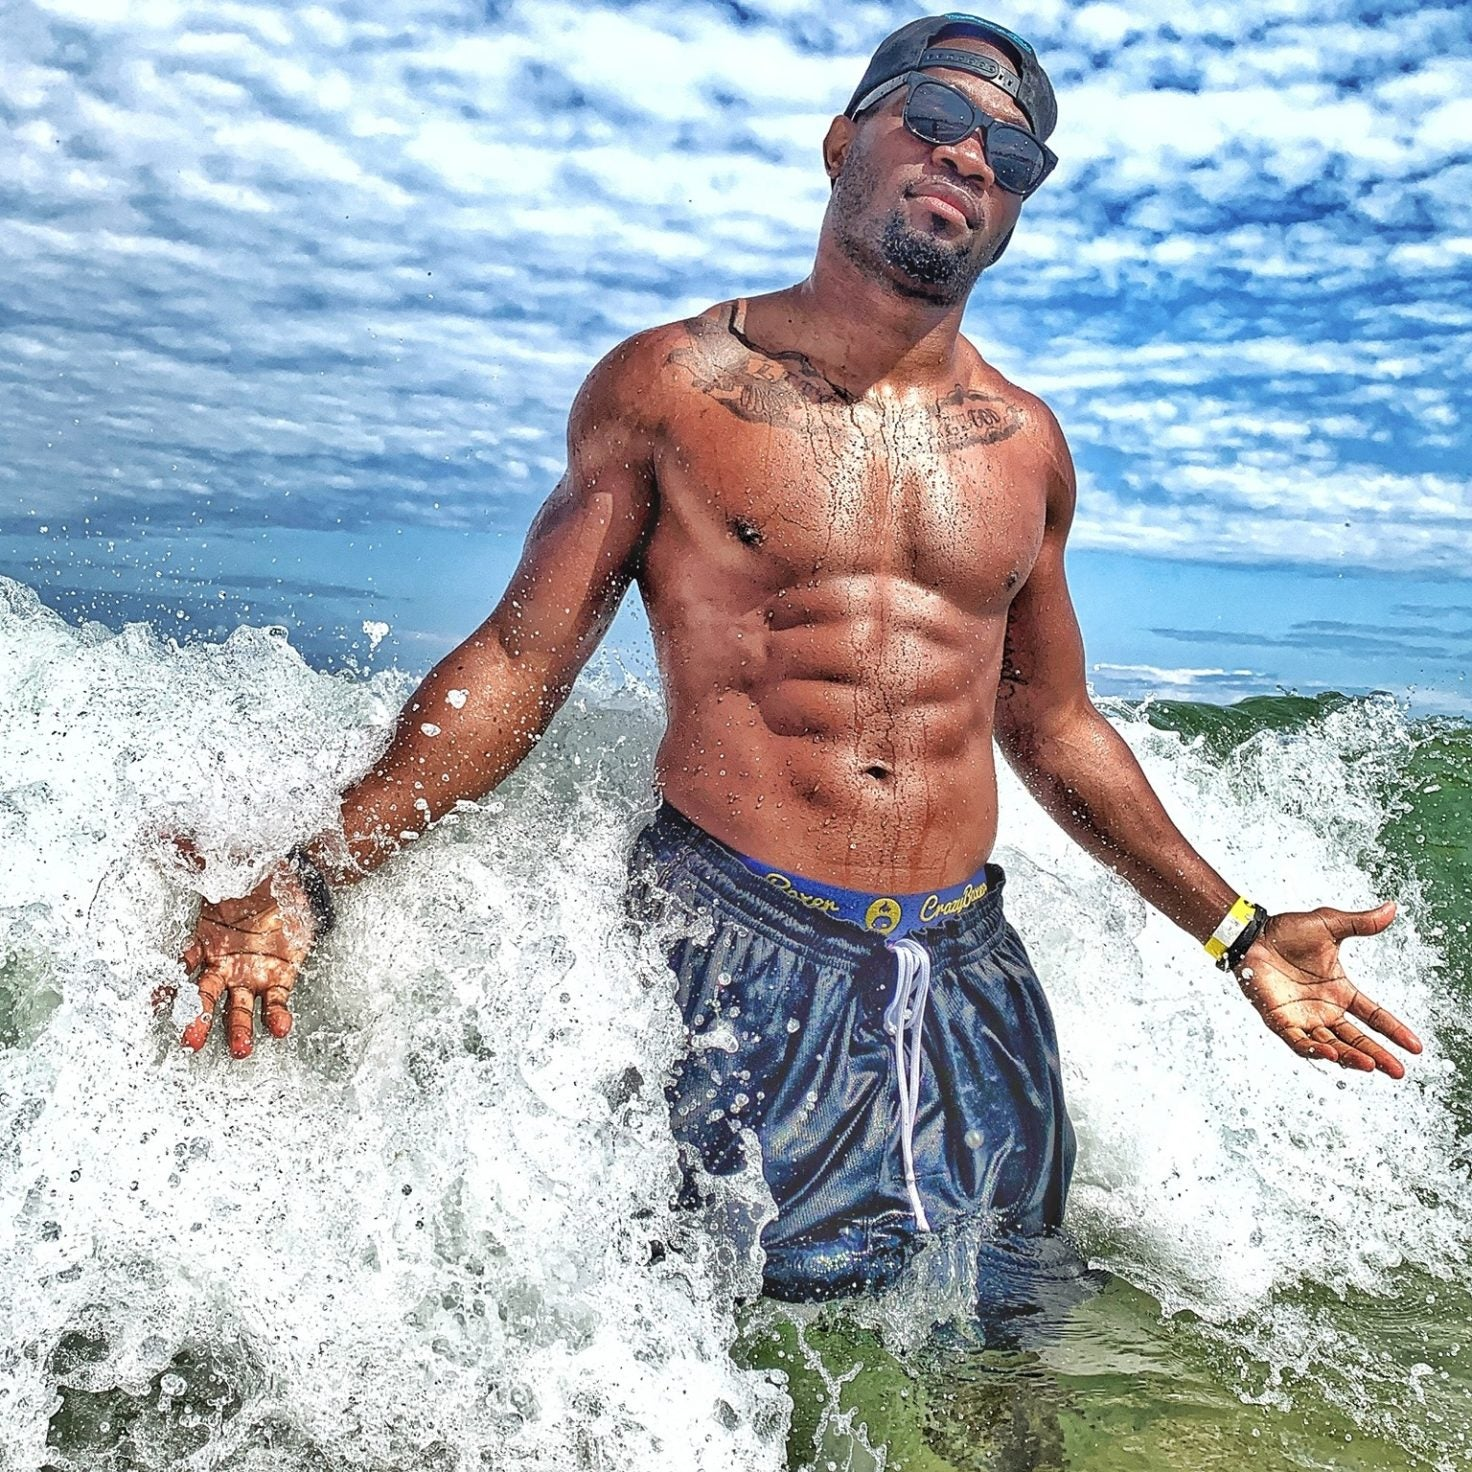 27 Photos of Traveling Black Men That Will Inspire You to Keep Globetrotting